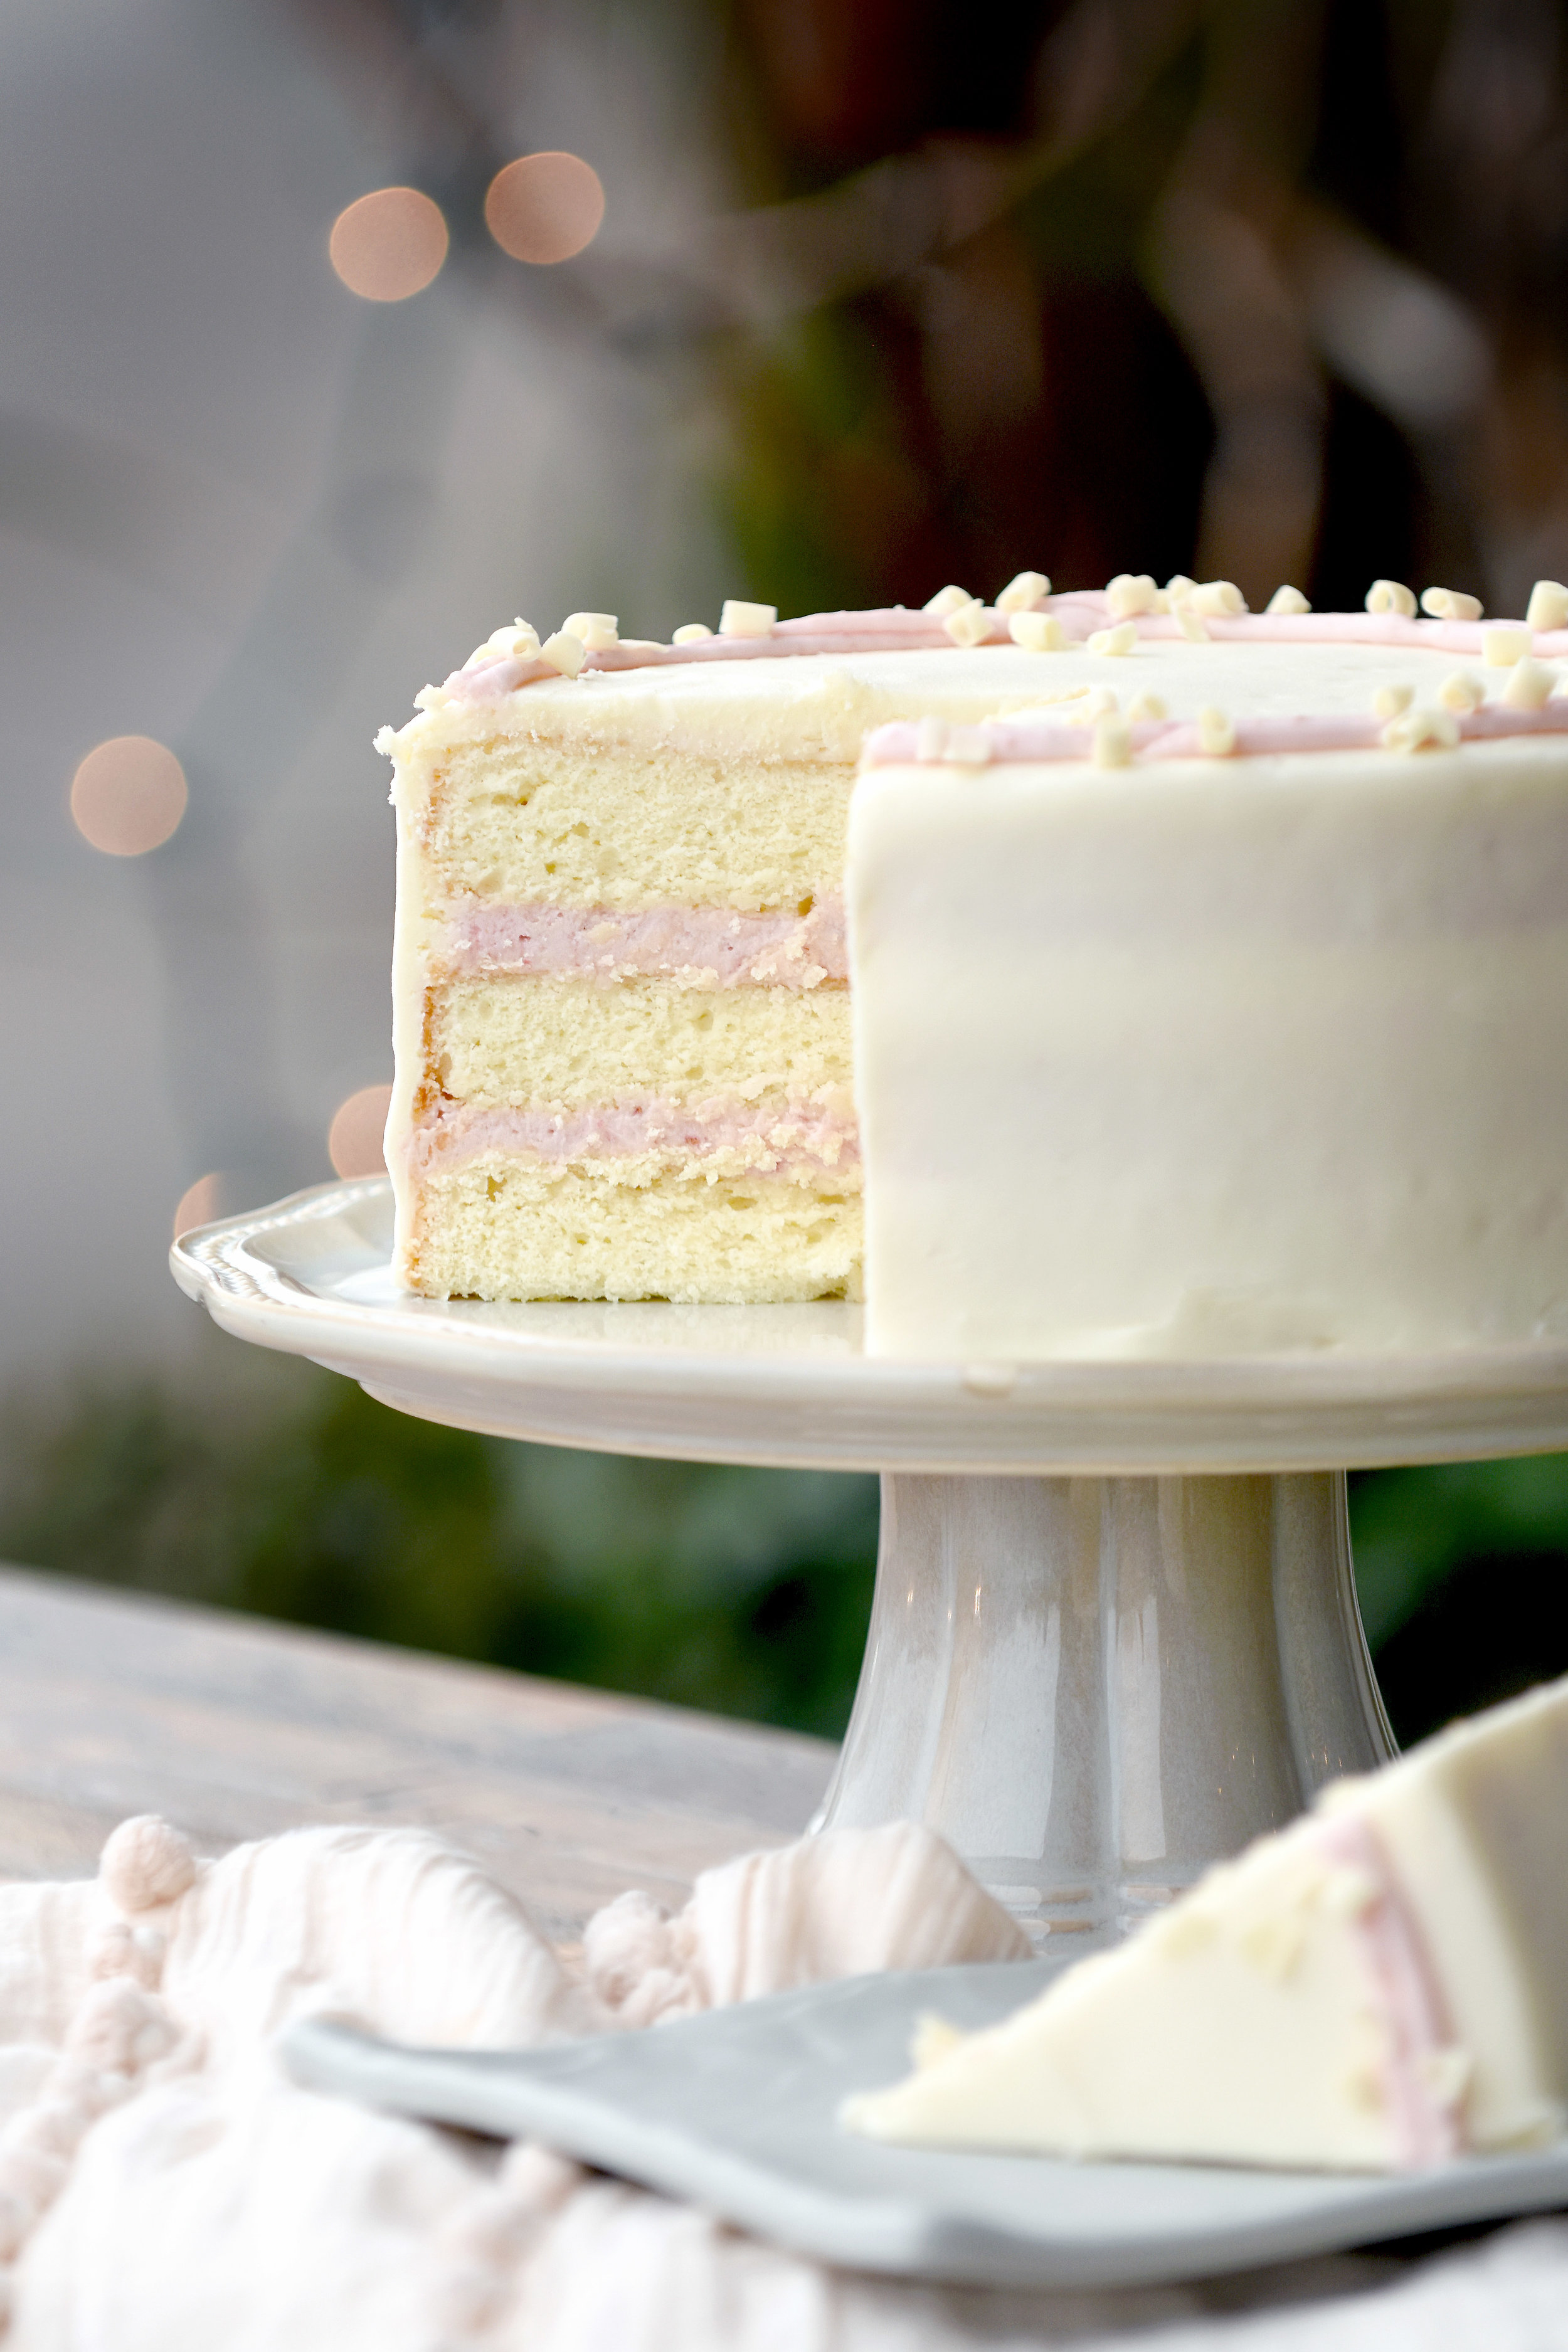 Raspberry Lady Cake   35 half / 62 whole  We just gave this cake a fresh update for spring! It's the  prettiest  cake on the bar! Rich cream cheese layer cake slathered with raspberry cream cheese icing between the layers that is made with Greensboro's own  Jammin' George  freshly-made raspberry jam. Iced on the outside with our classic cream cheese icing and trimmed with a delicate raspberry cream cheese border and white chocolate curls.